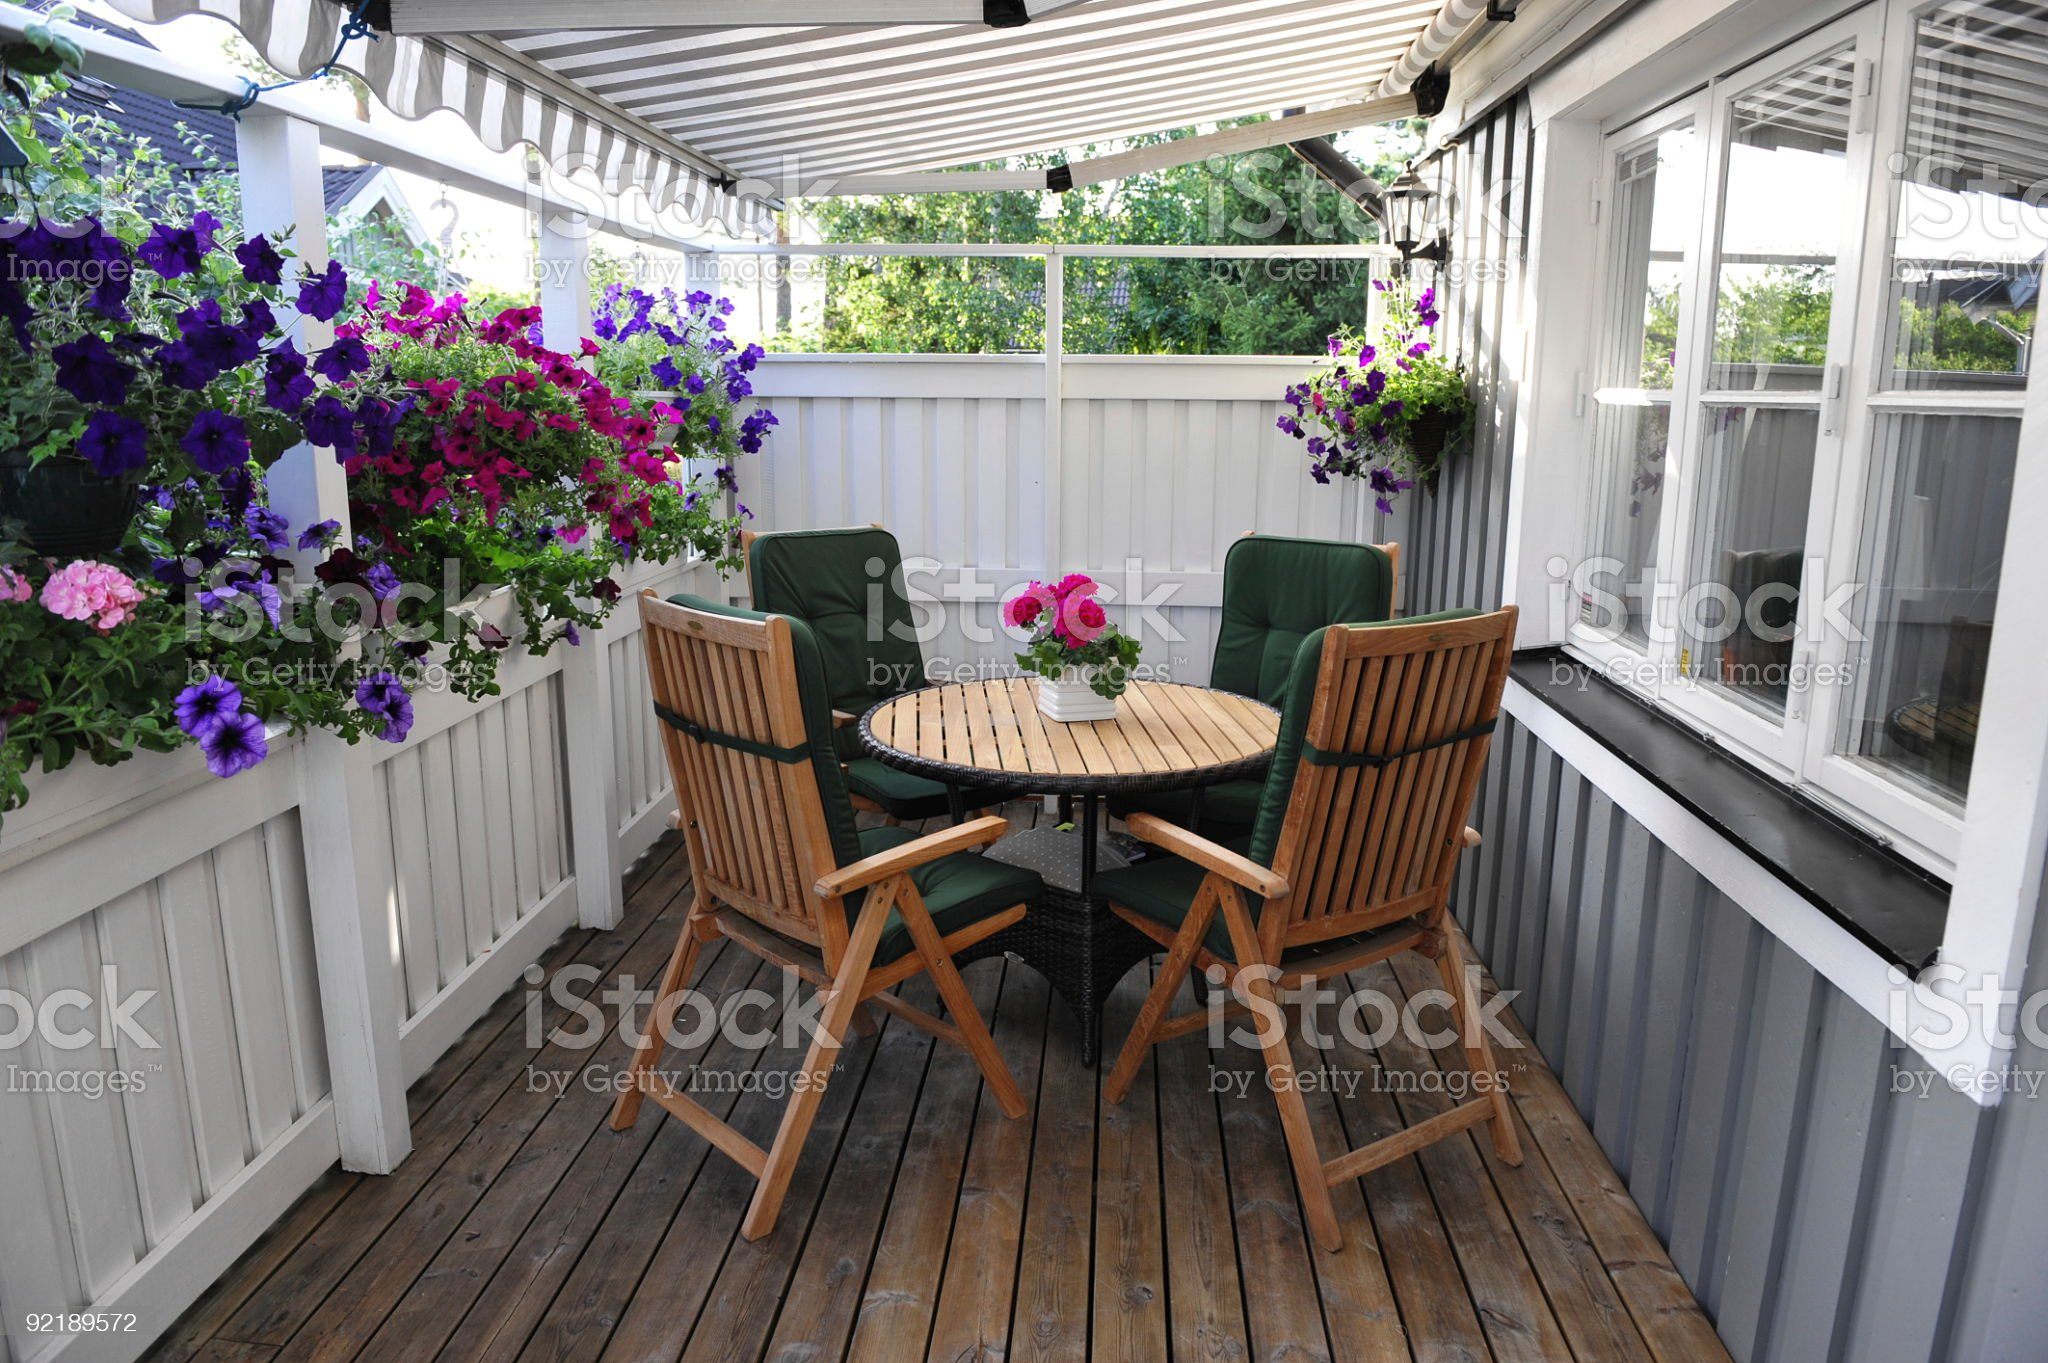 Patio with furniture and flowers royalty-free stock photo